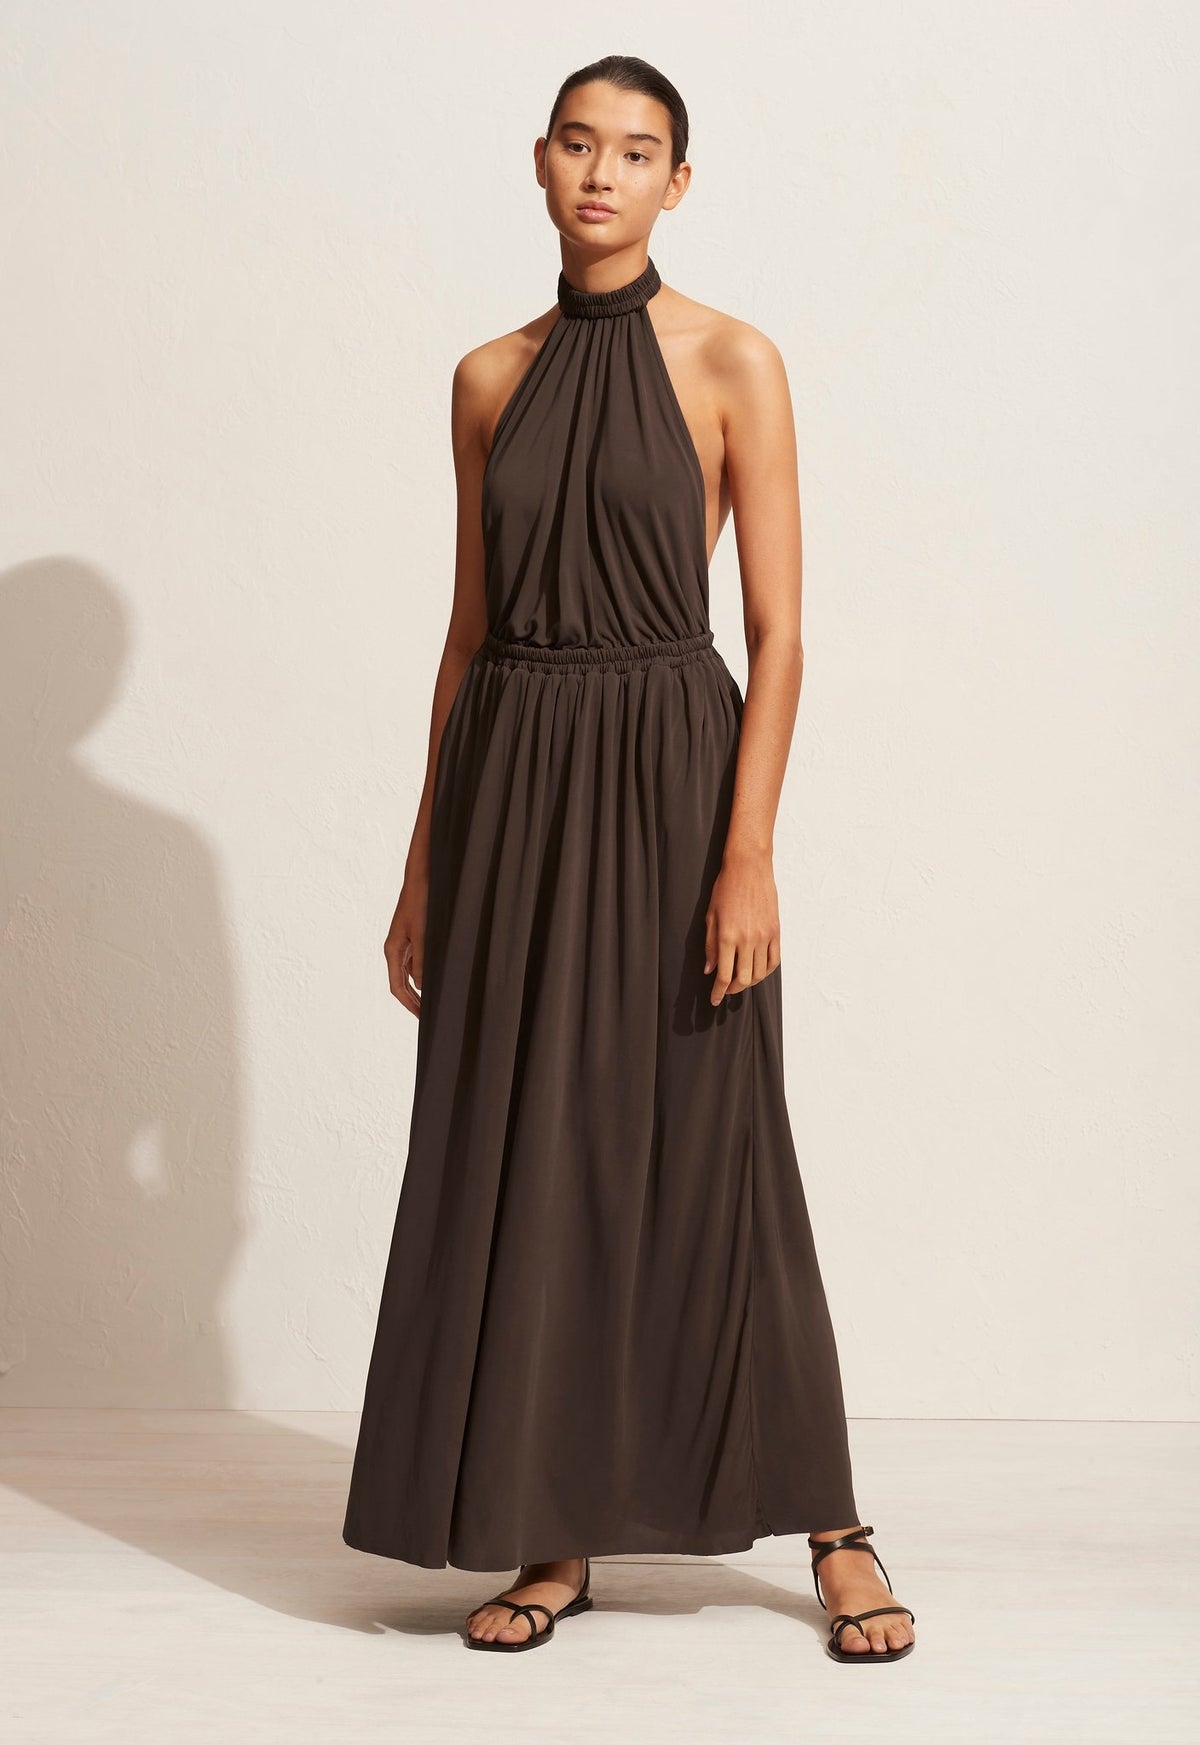 The Halter Dress